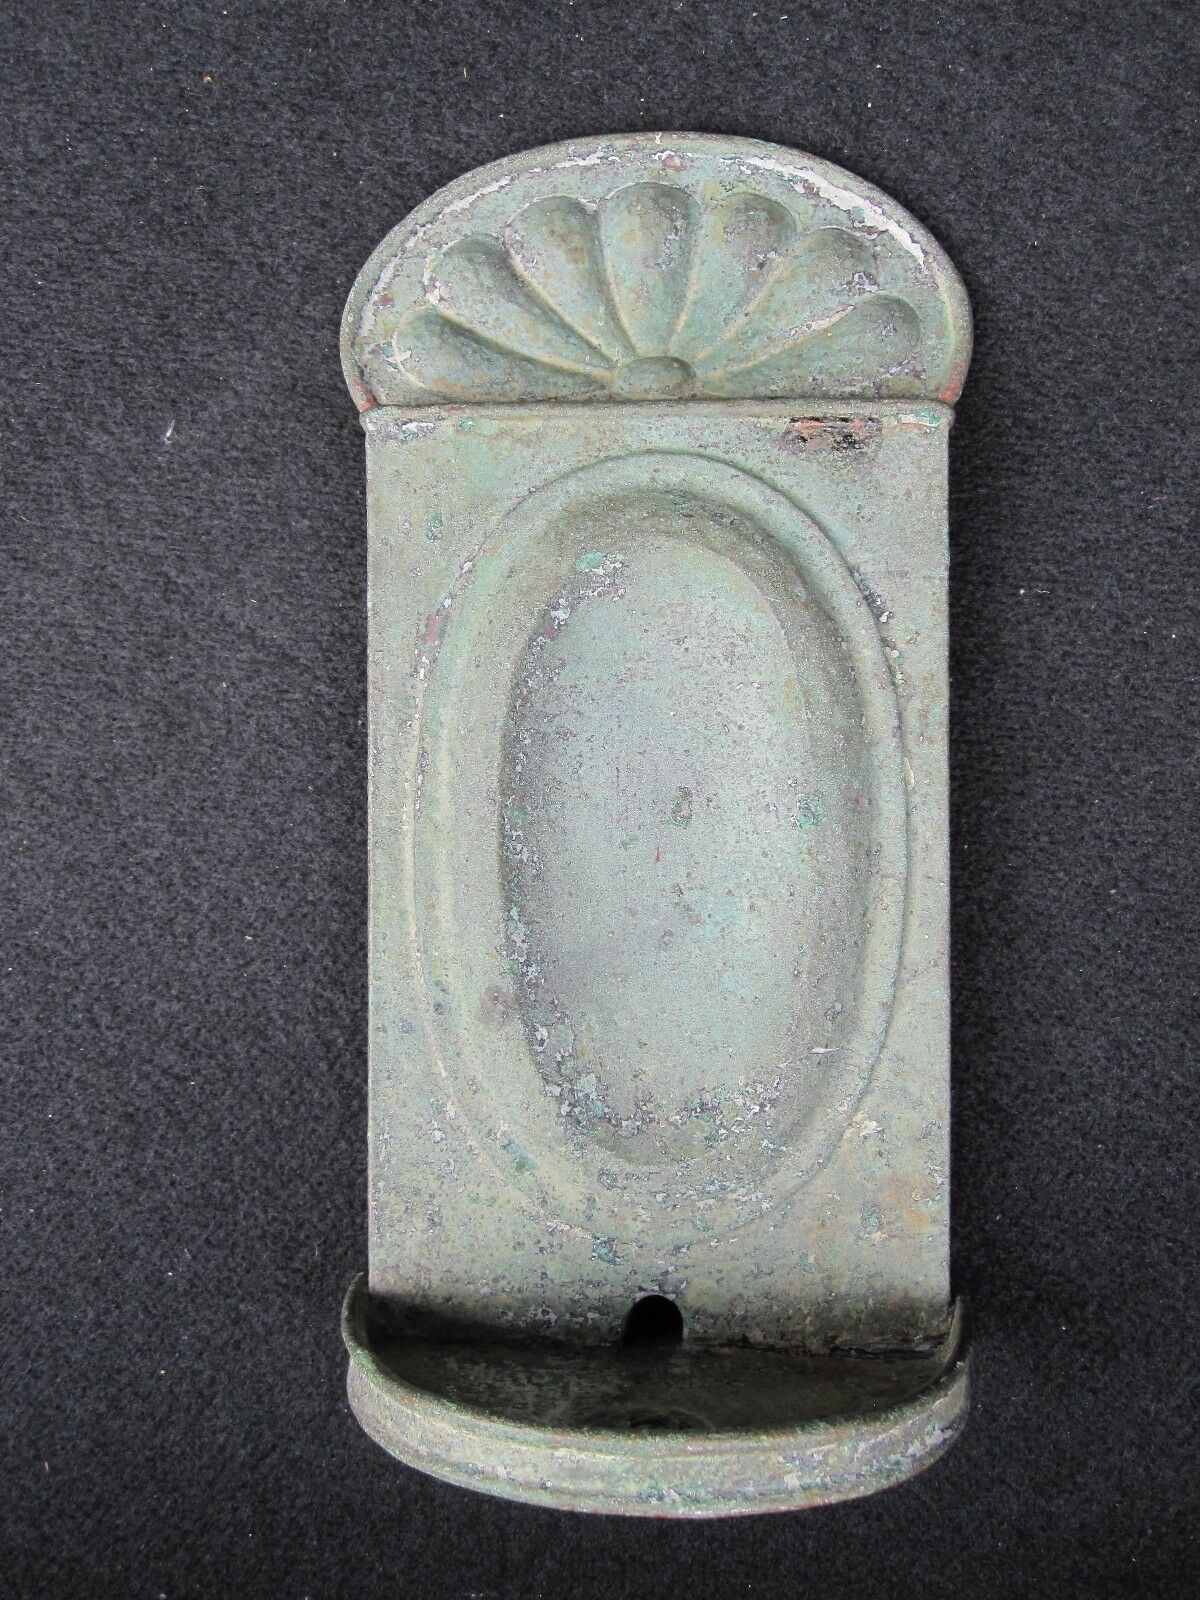 Antique Early American Copper Candle Sconce Last Long Island Ny Origin Decorate